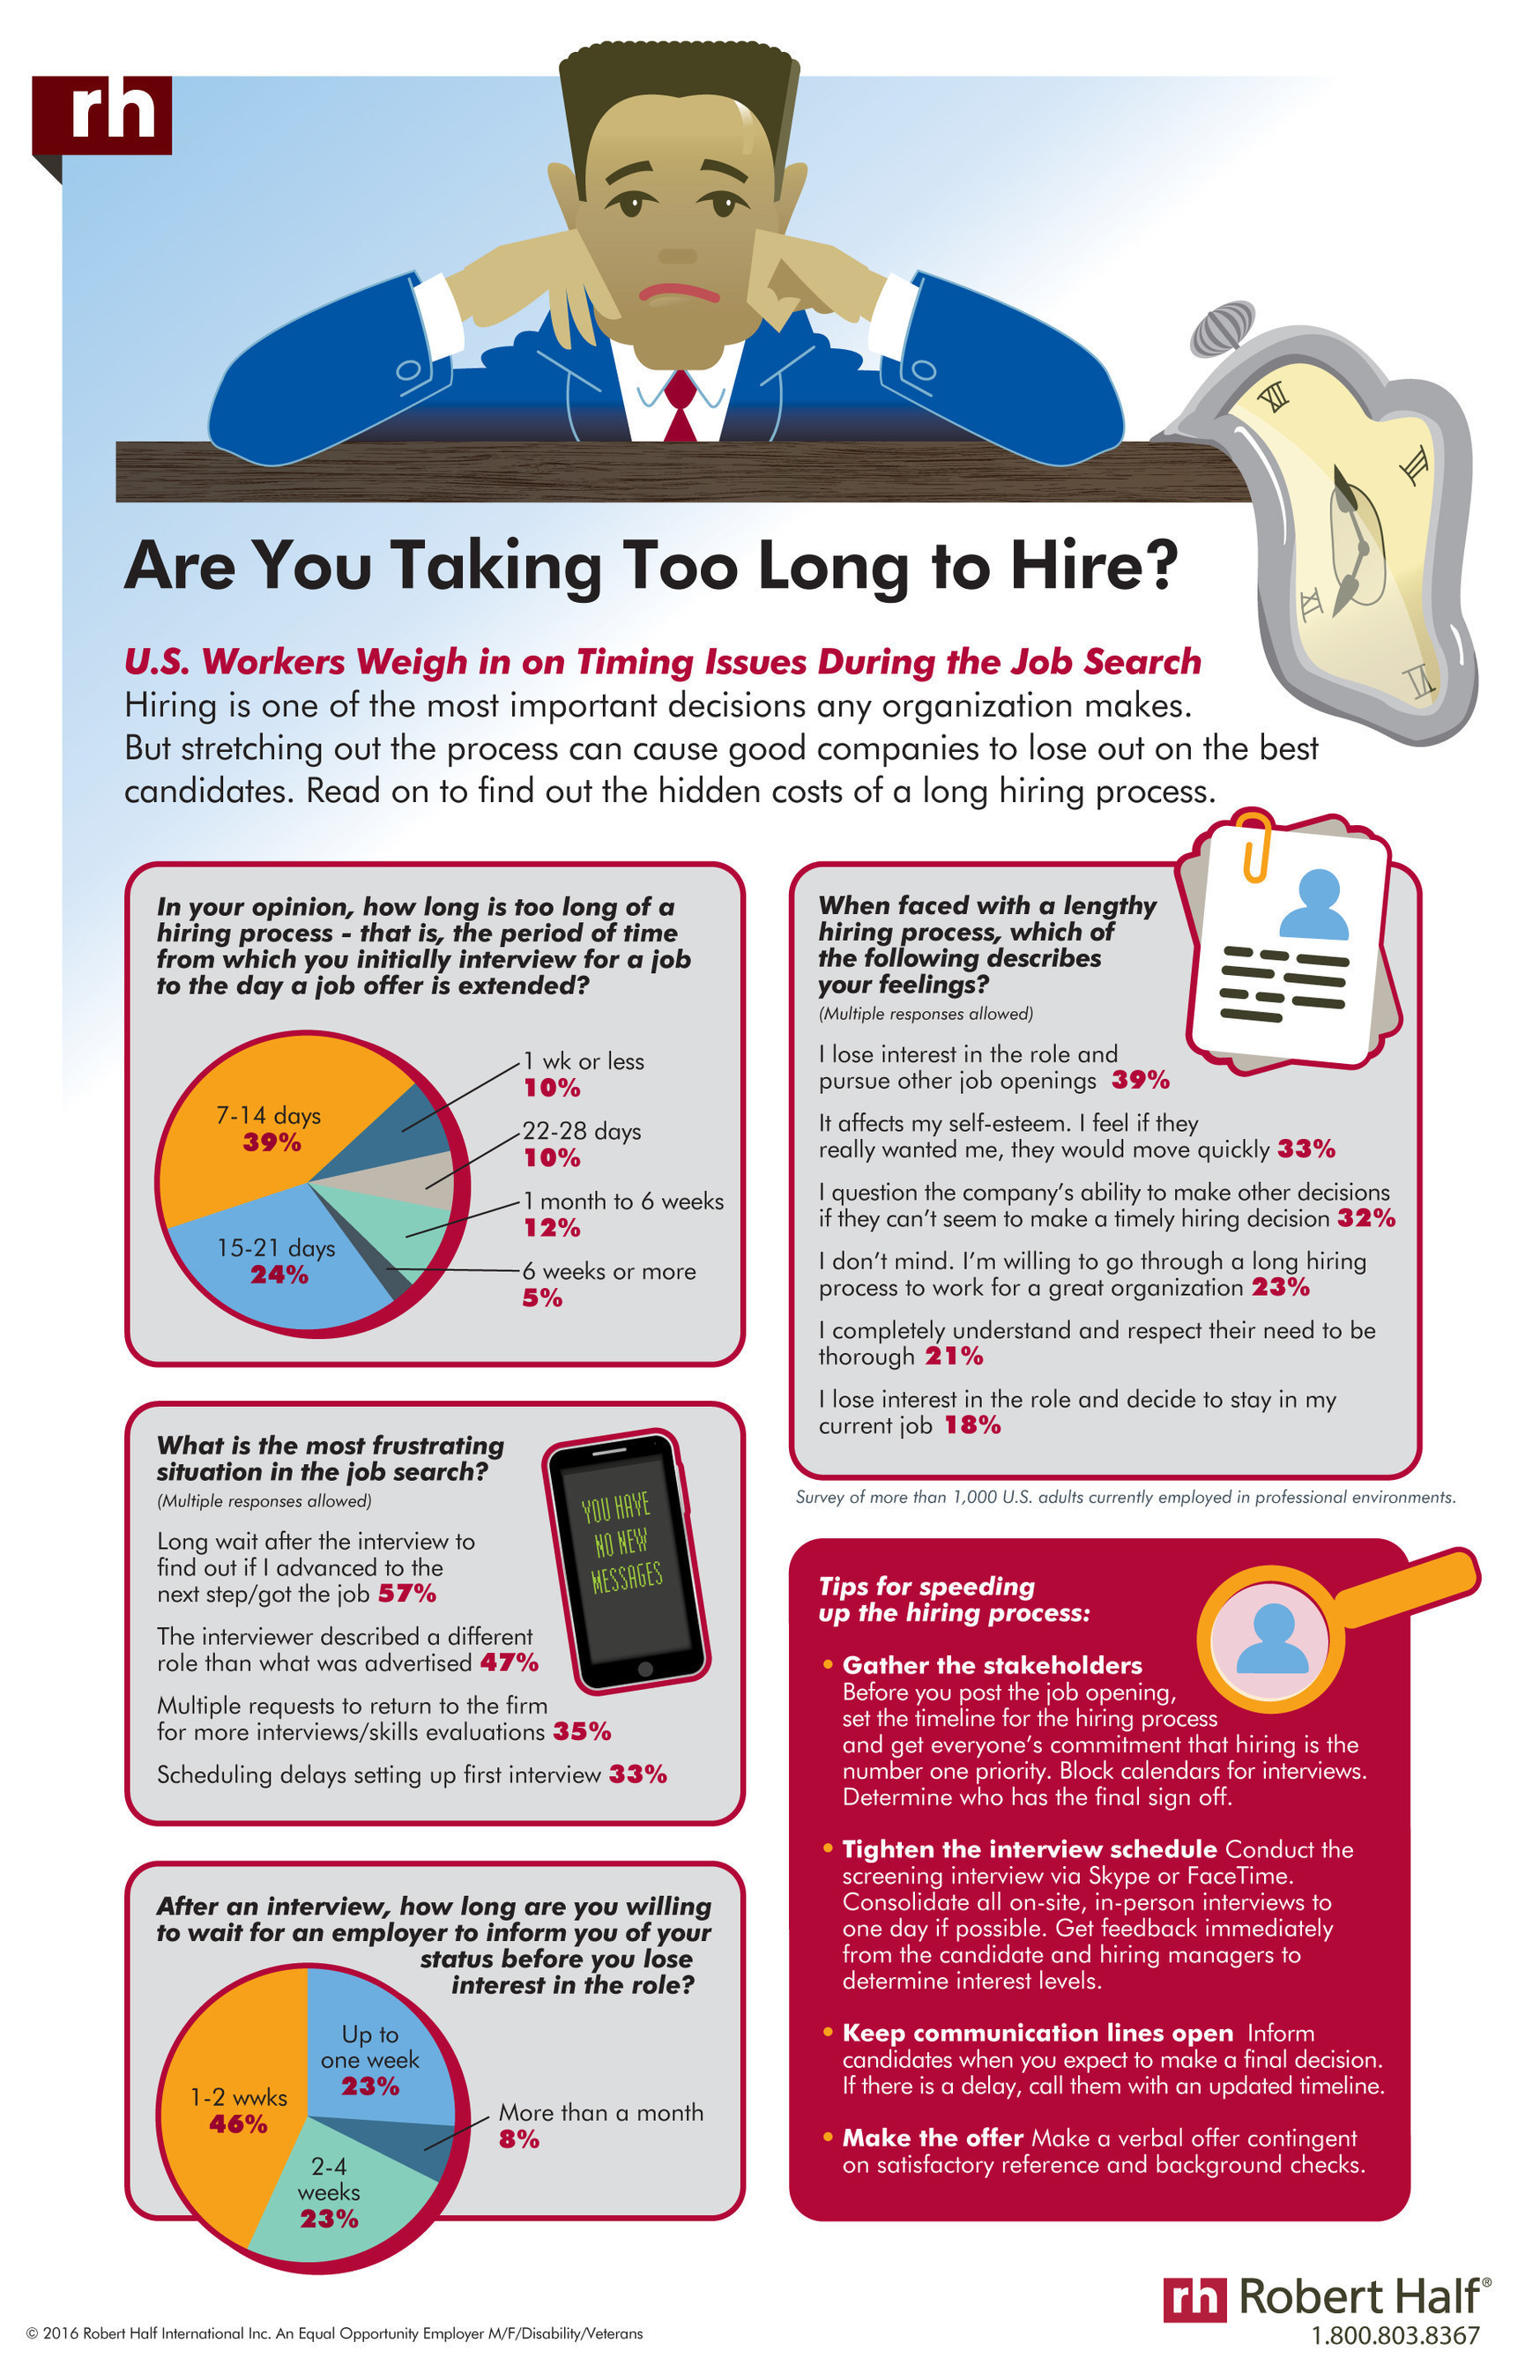 Are you taking too long to hire?